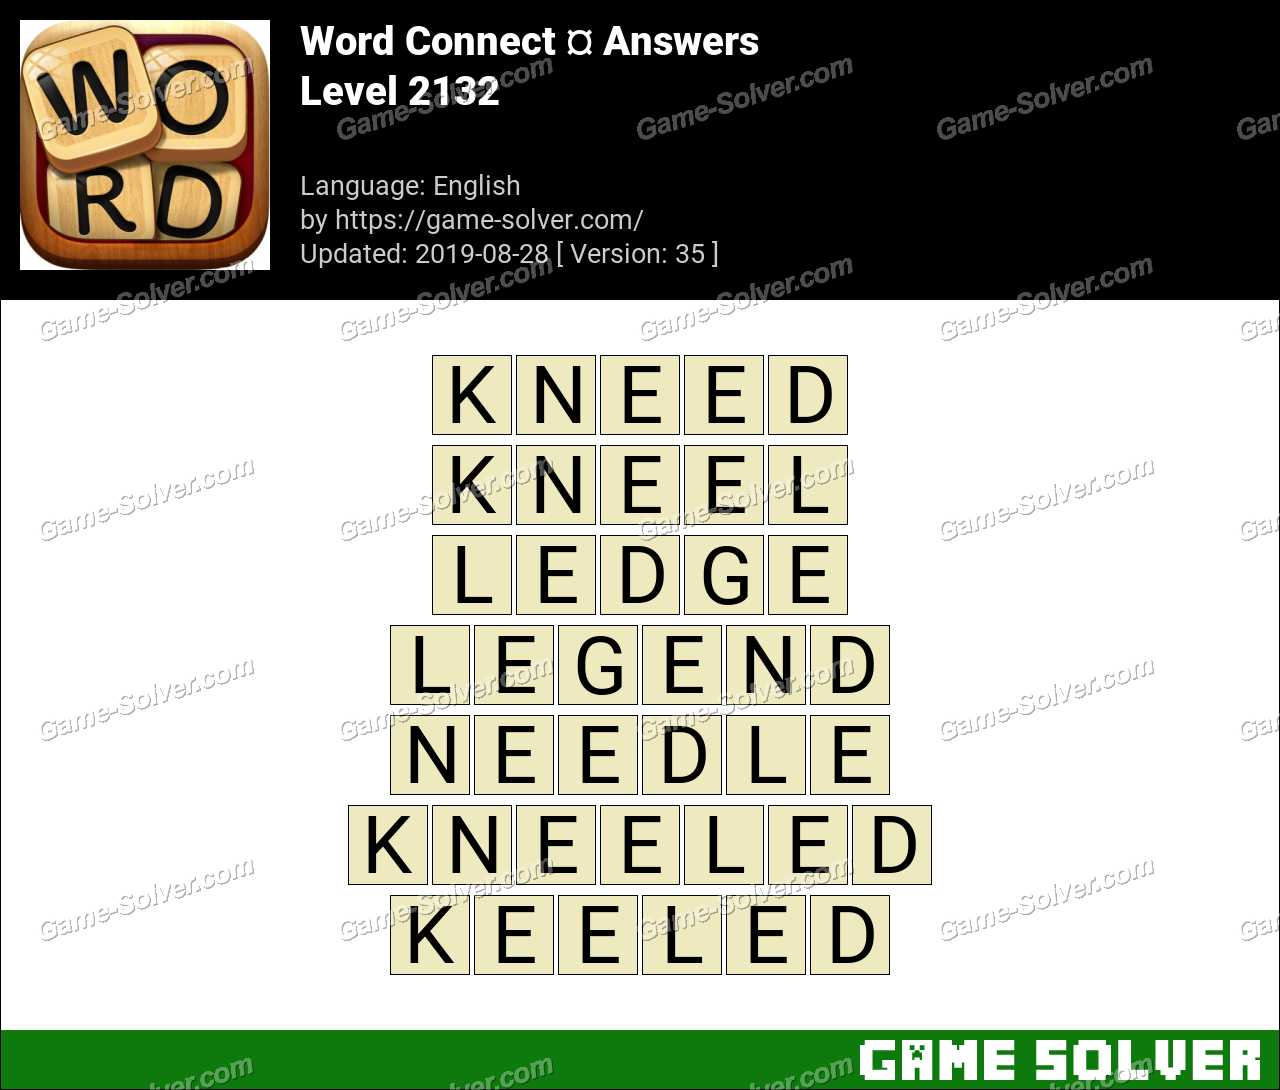 Word Connect Level 2132 Answers